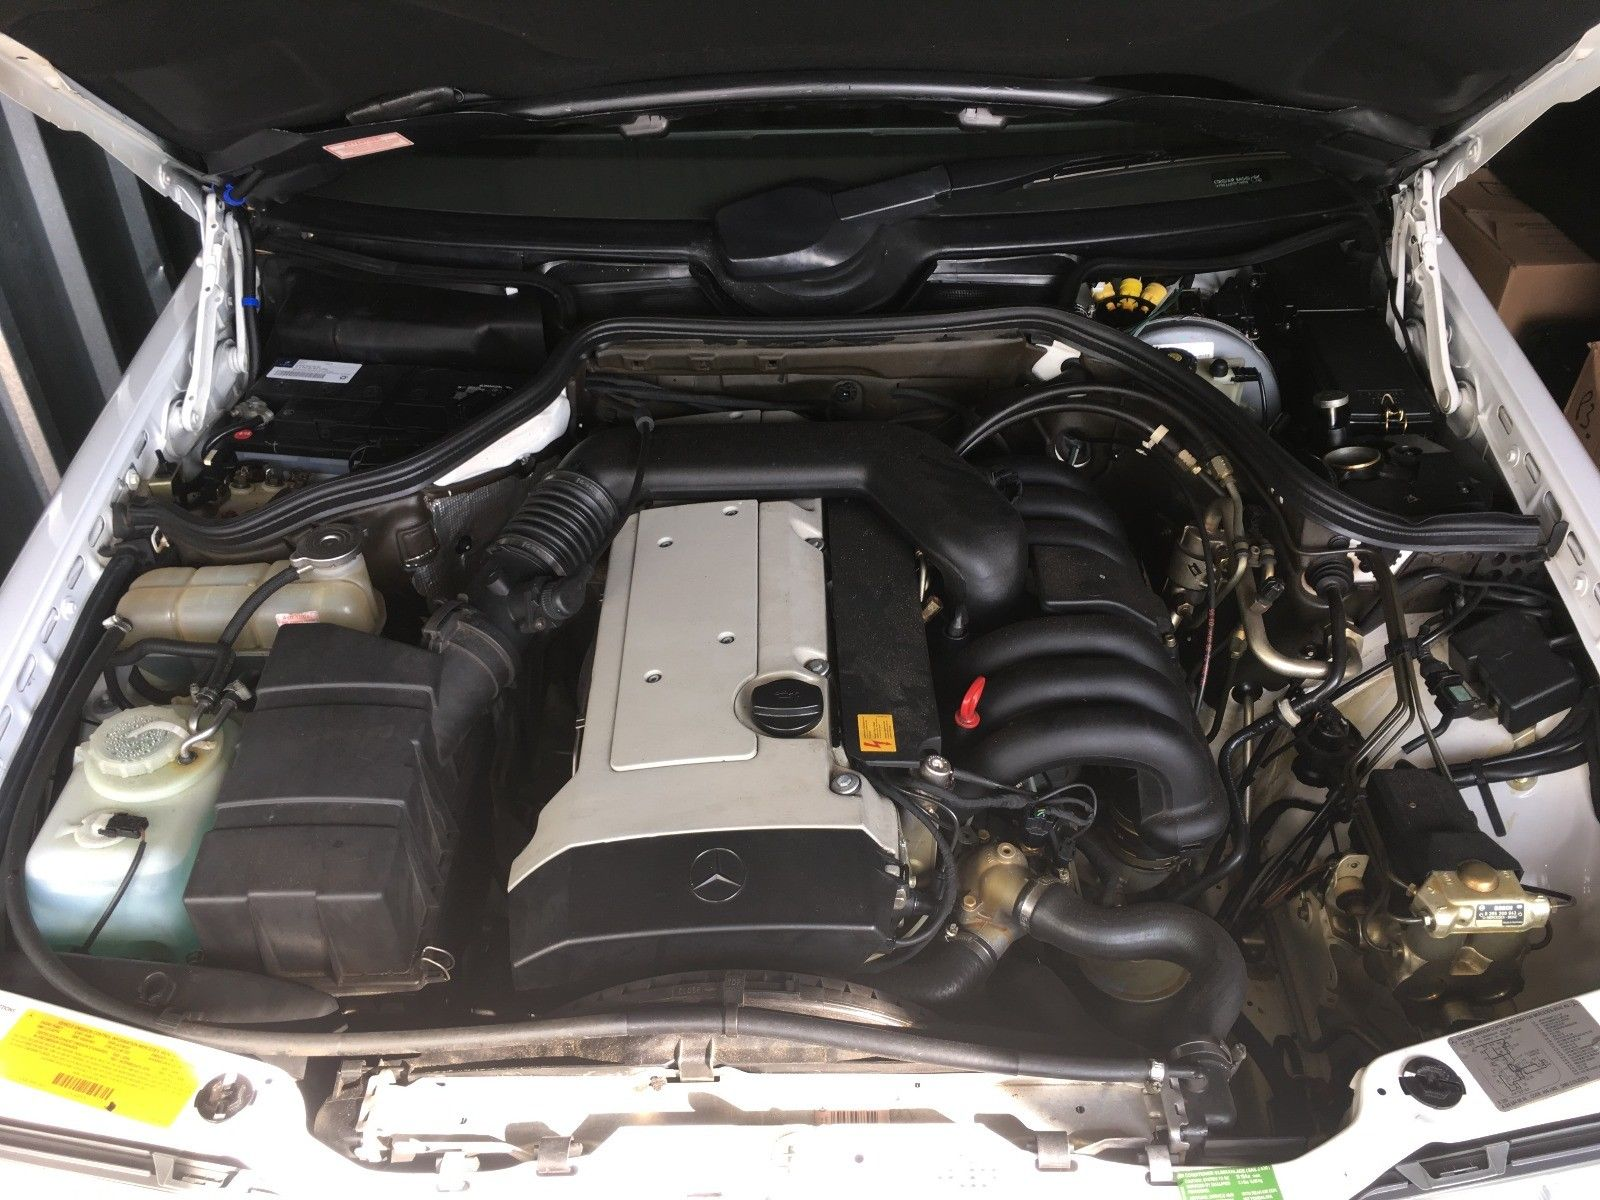 1995 Mercedes-Benz E-Class engine